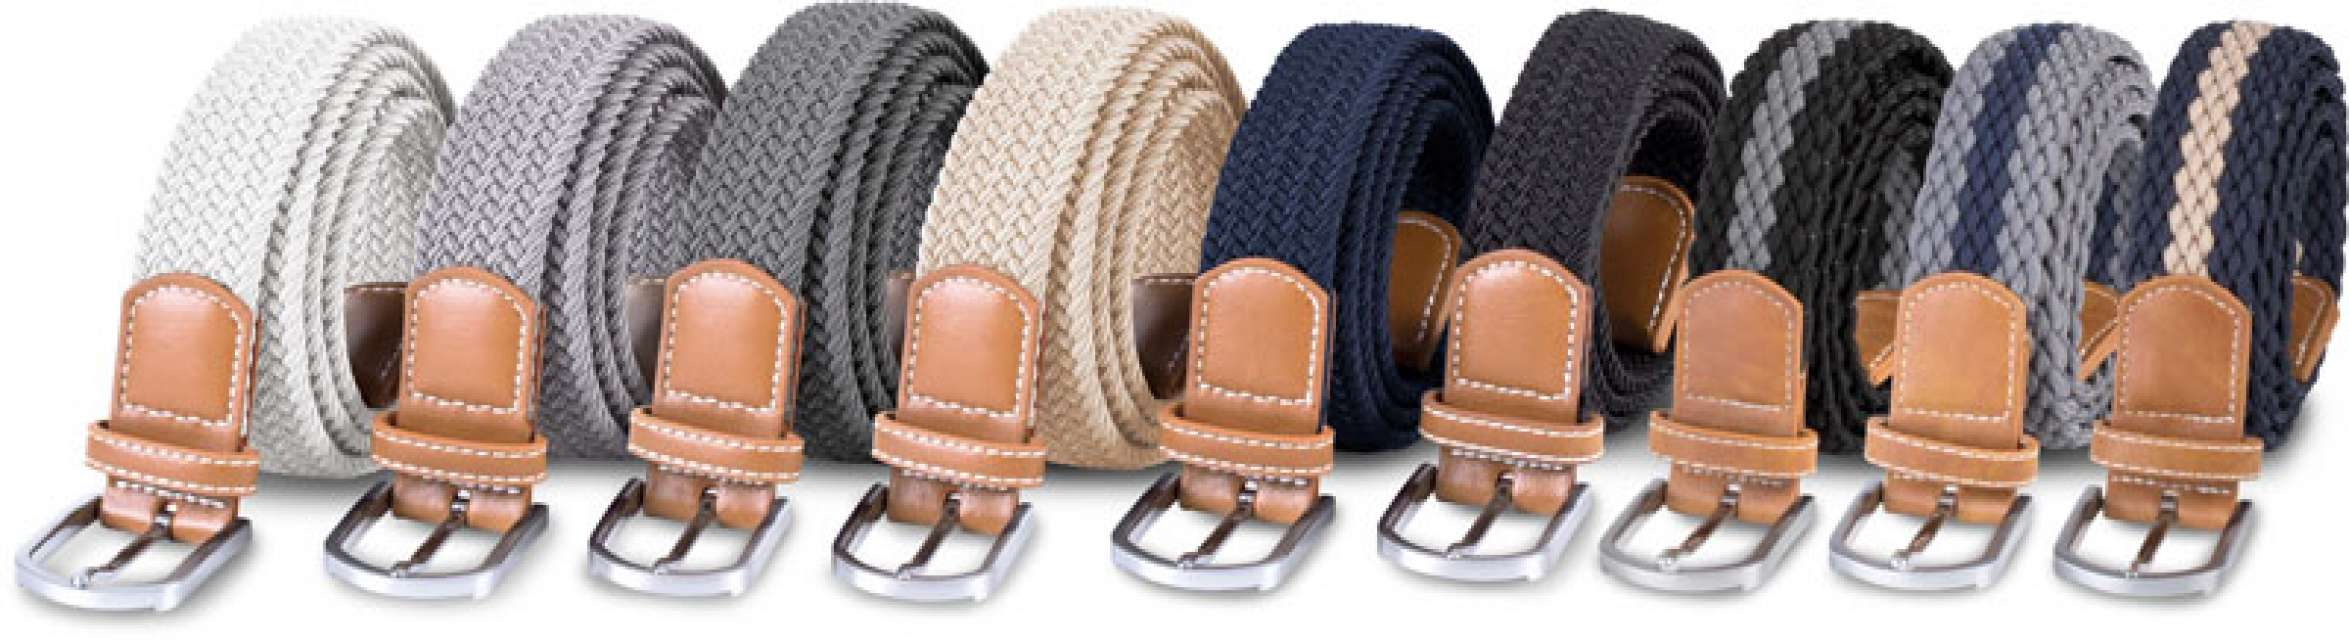 BRAIDED ELASTICATED BELT